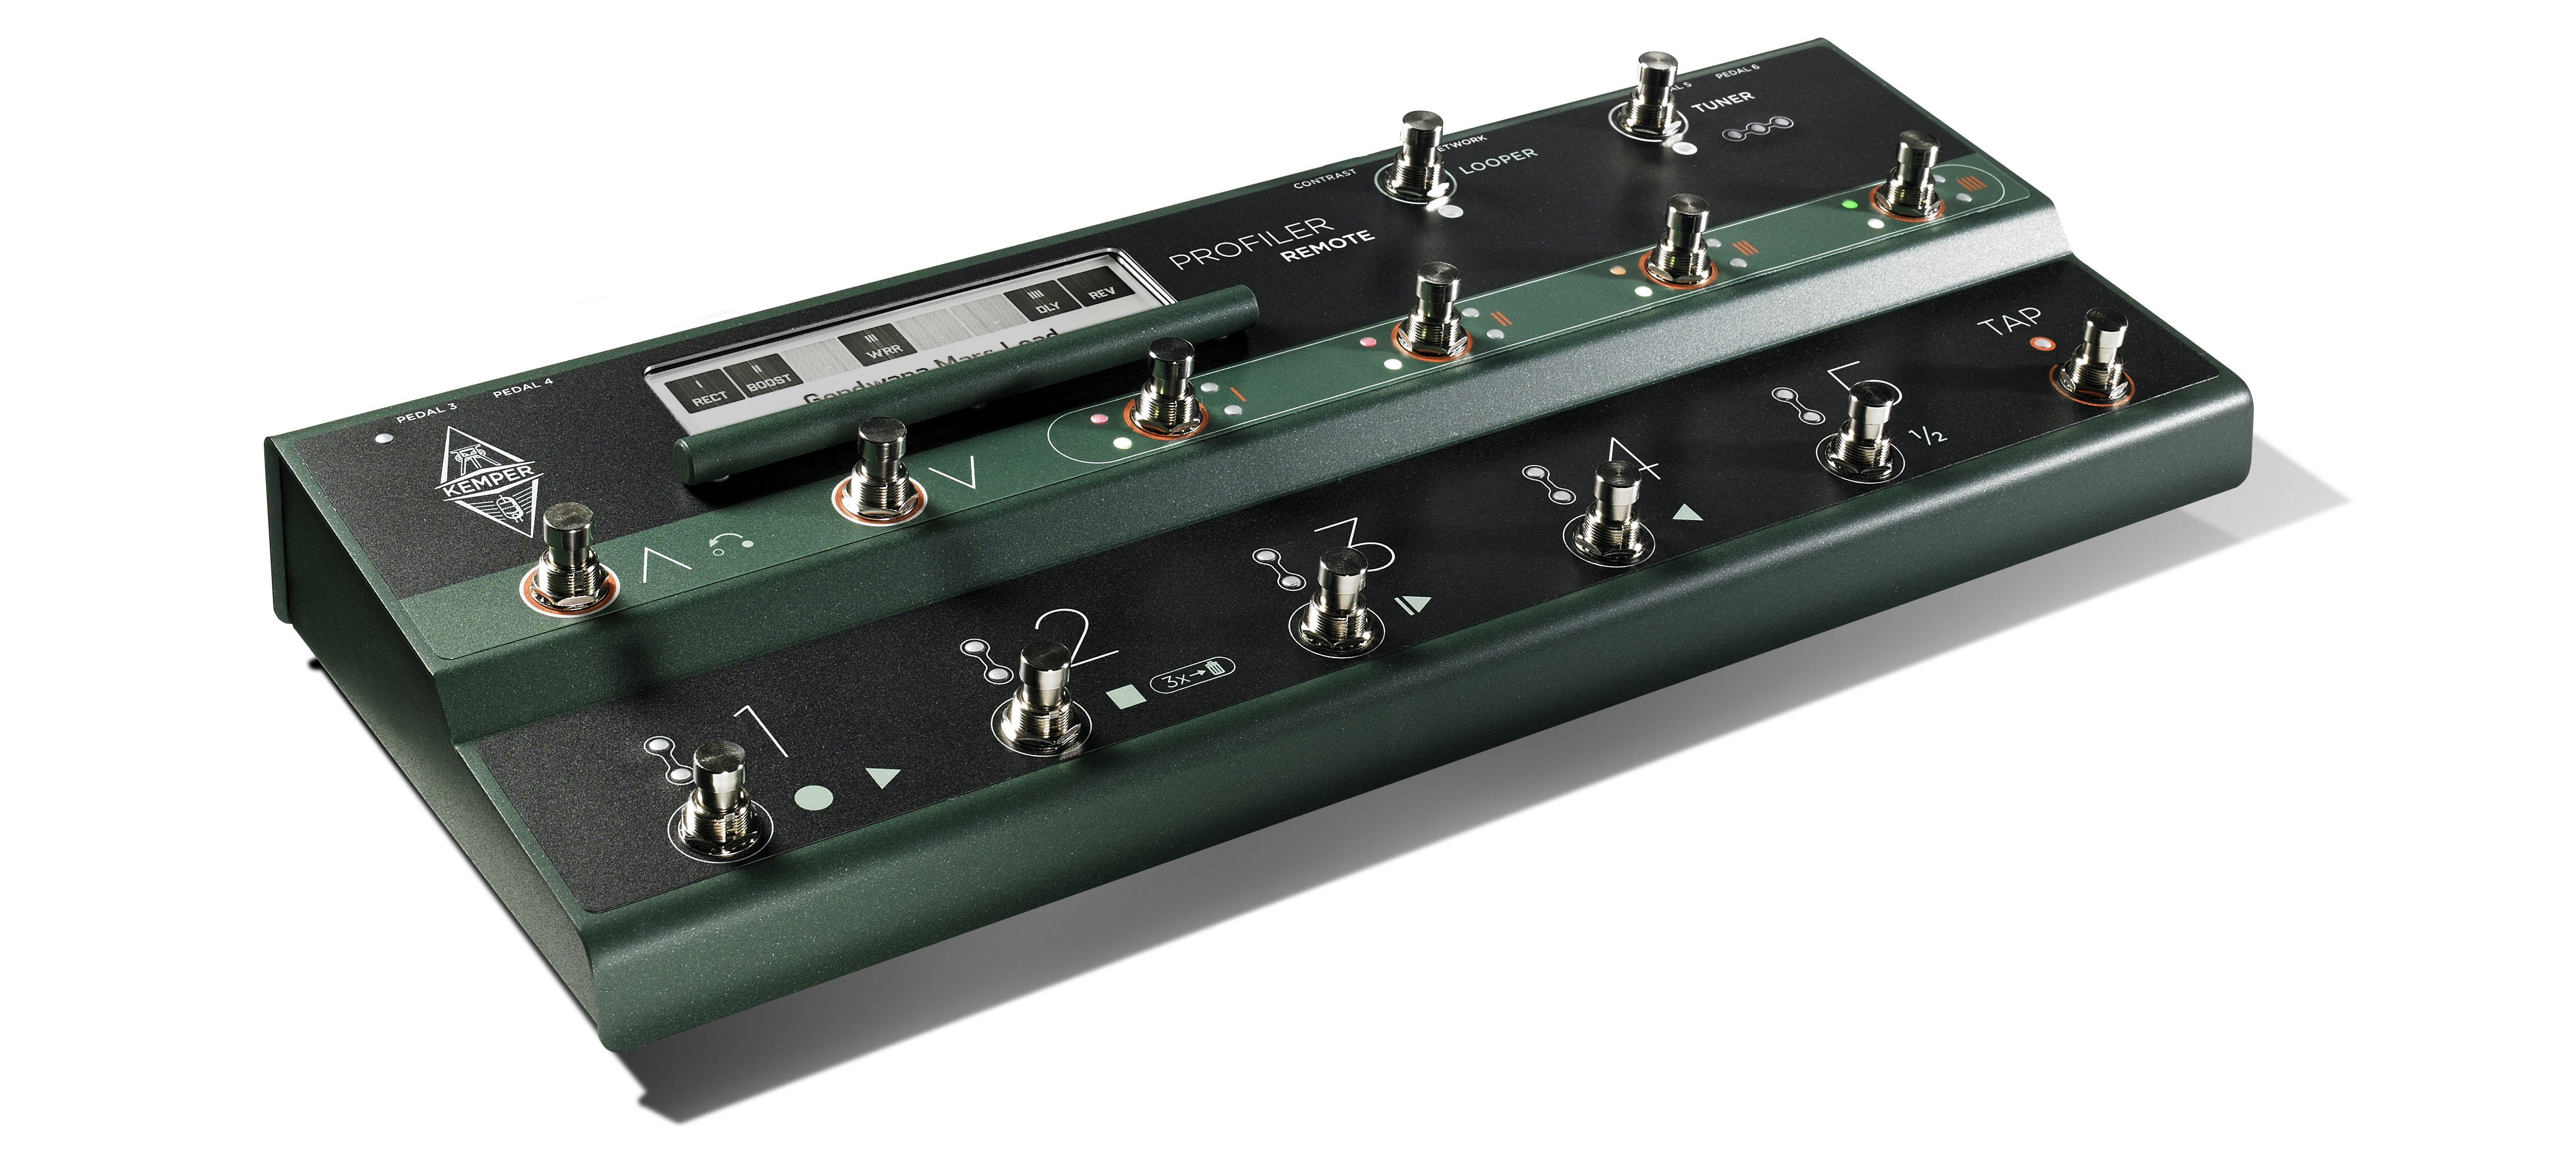 Kemper Remote offers hands-free access to Profiler's